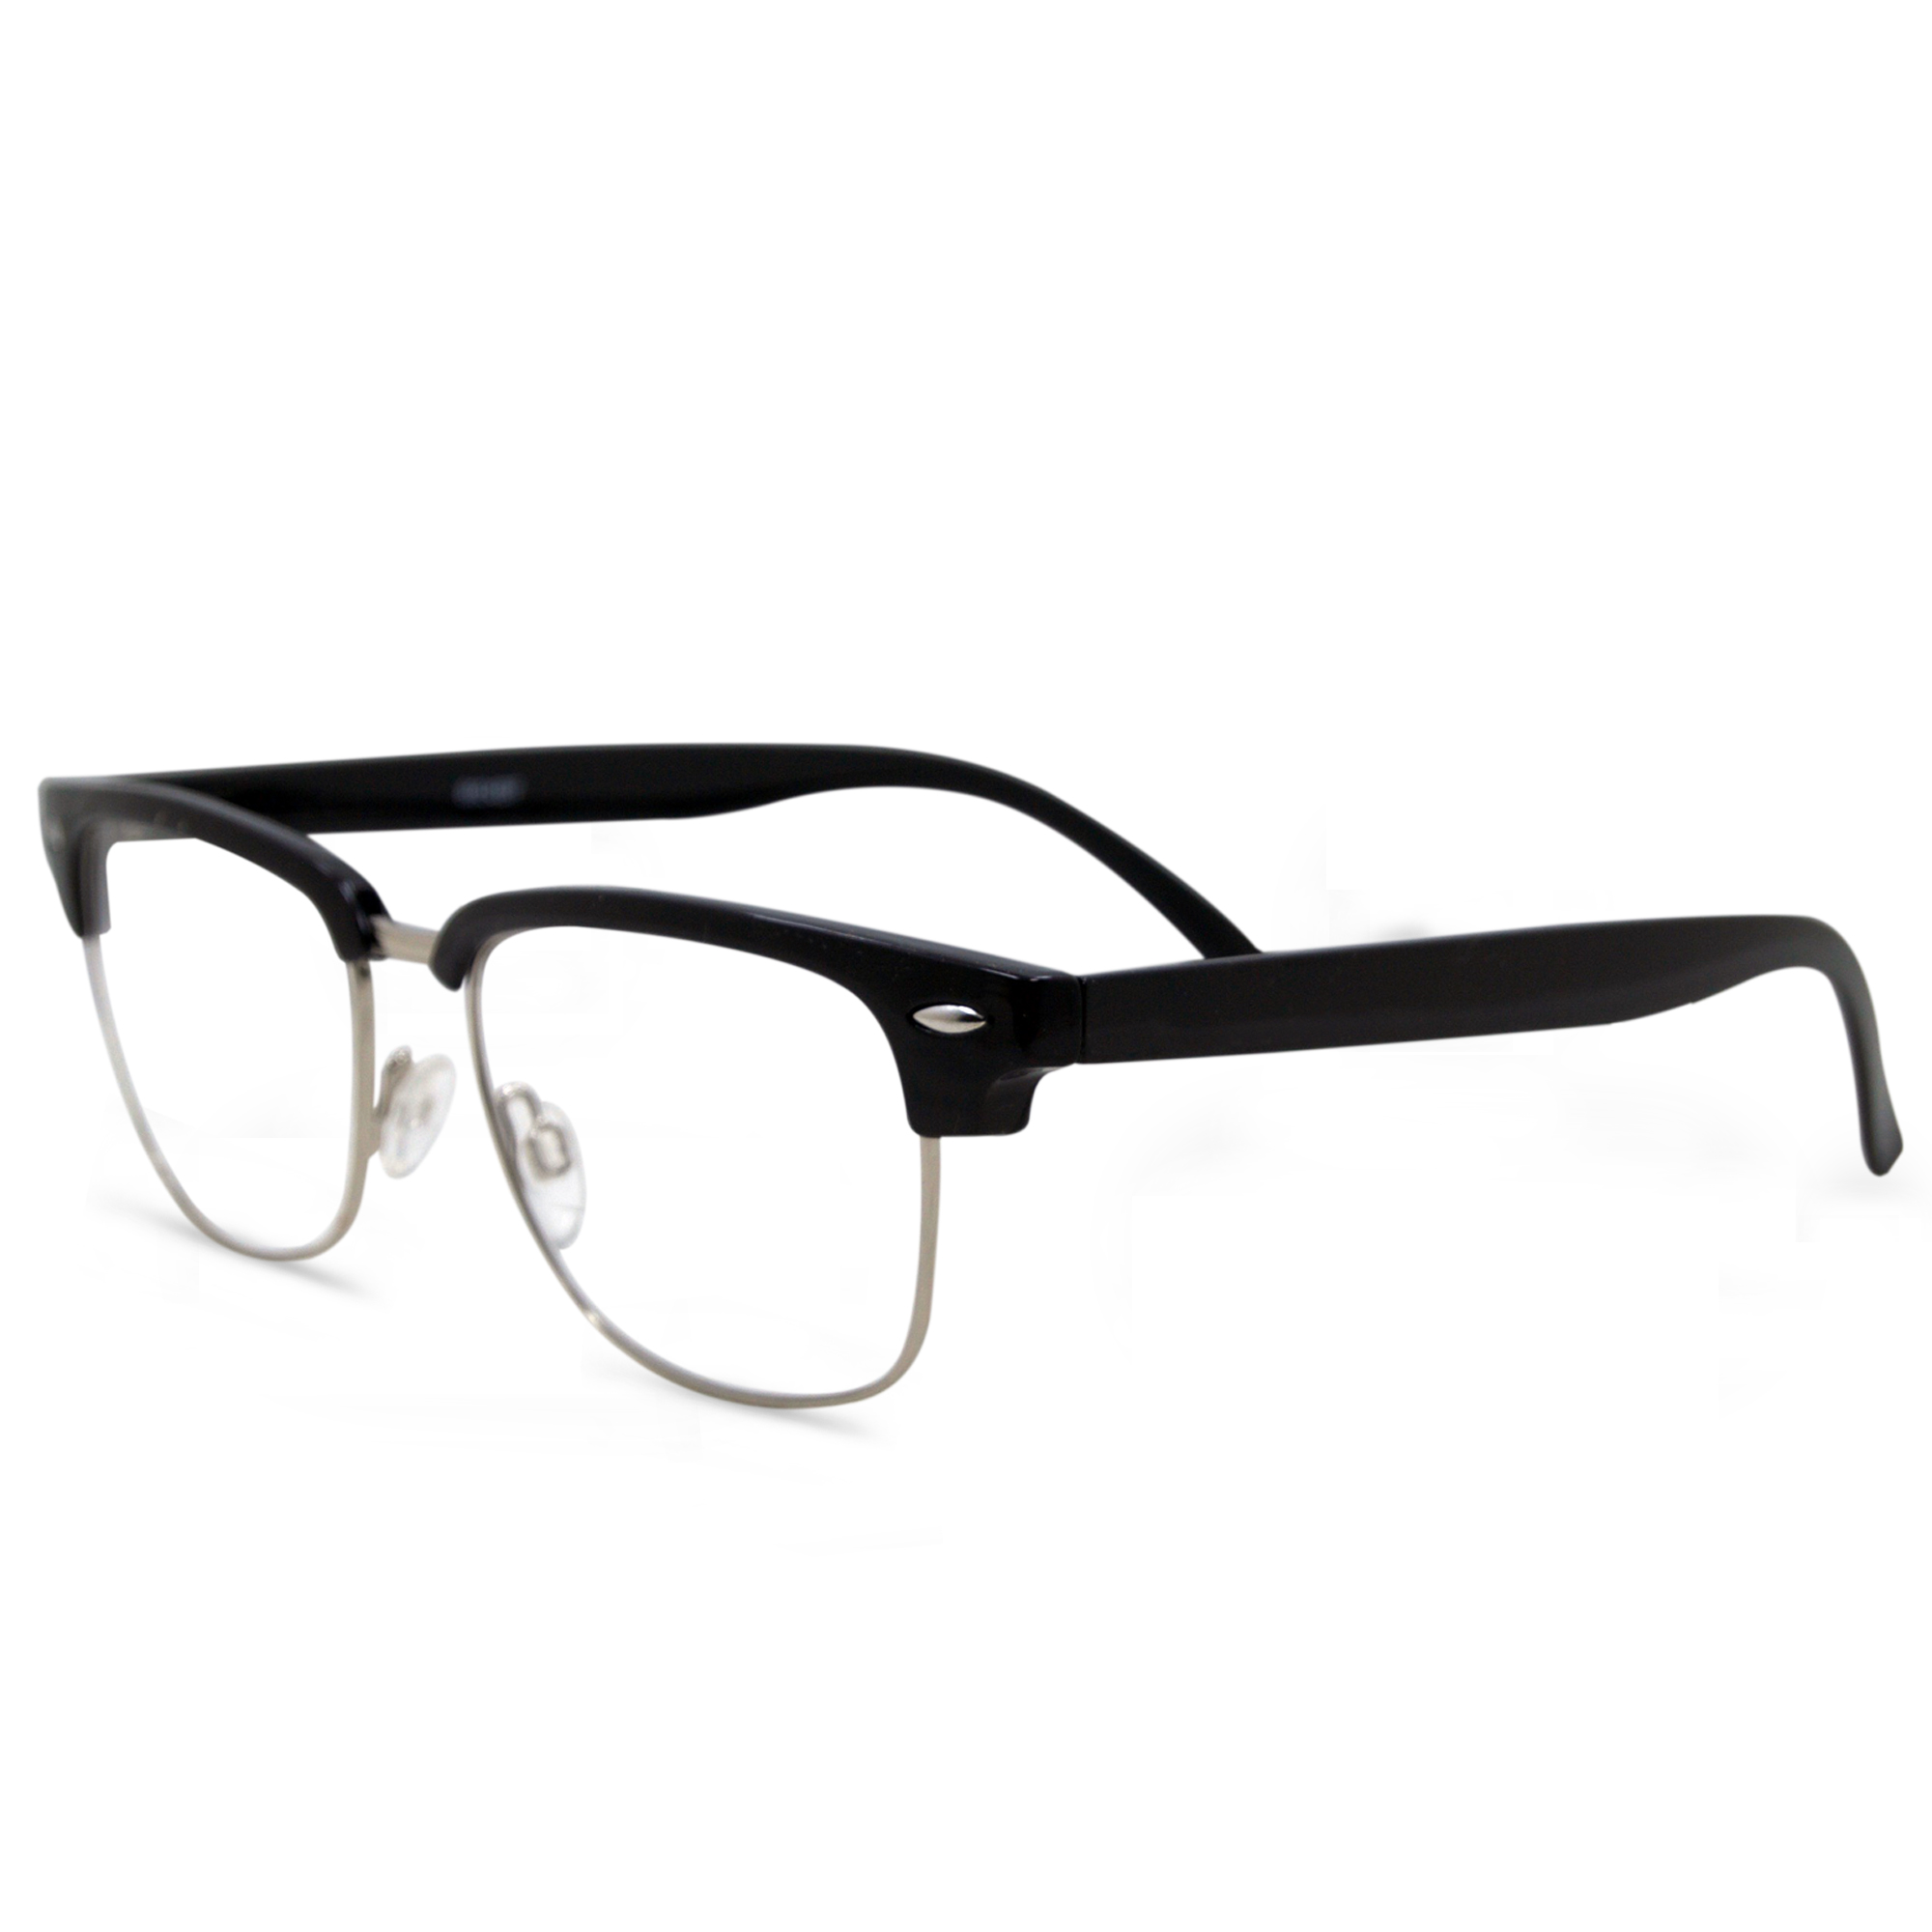 a9b804abfc In Style Eyes Sellecks Bifocal Reading Glasses for Both Men   Women -  Walmart.com